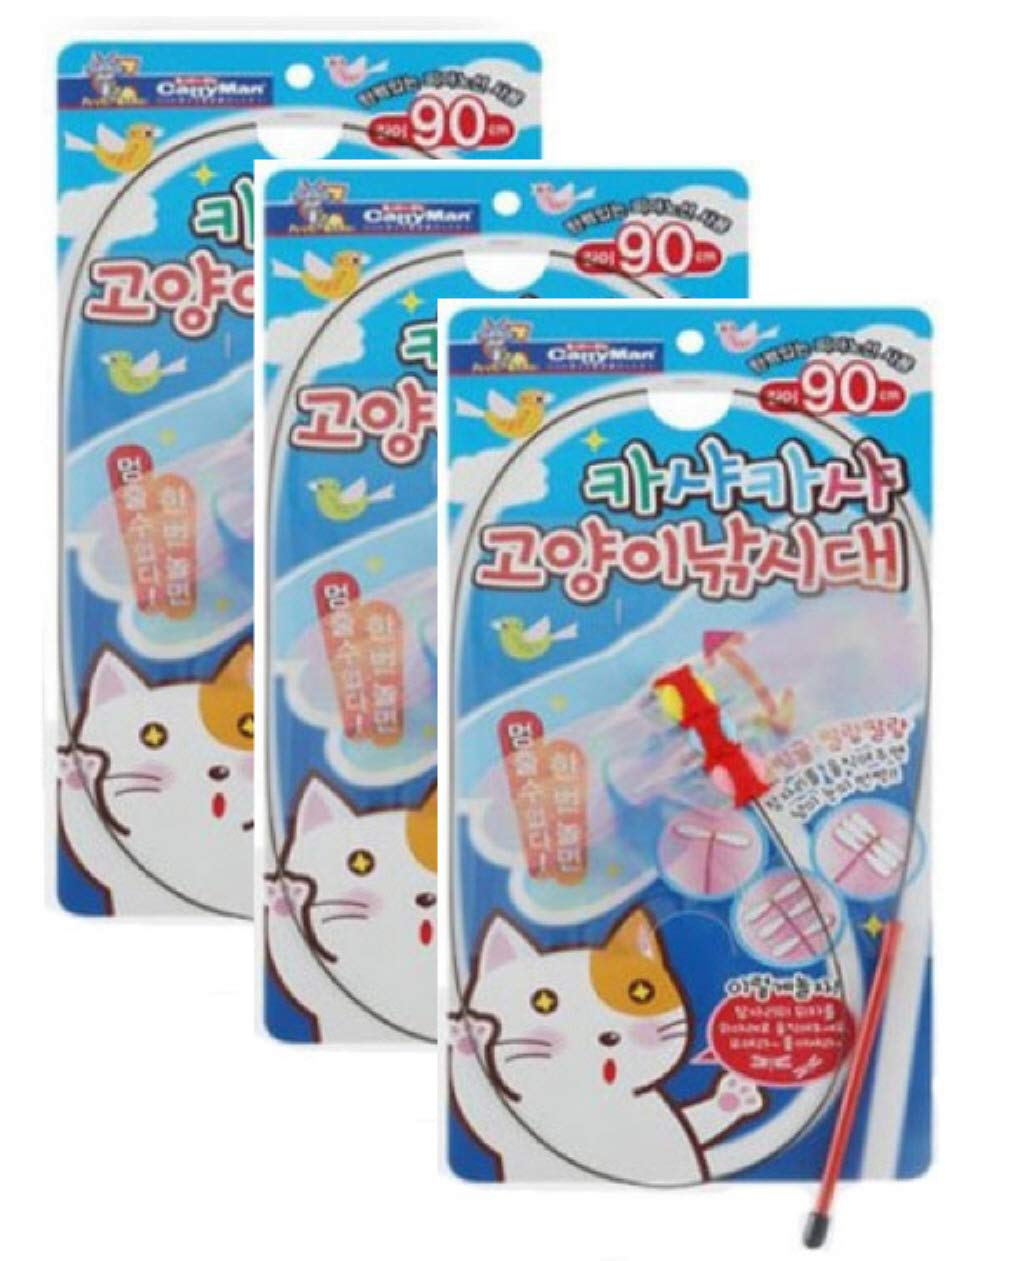 Catty Man Petz Route Cat Toy [3-Pack] KashaKasha Byonbyon Long Stick Play with a Kitten by Catty Man